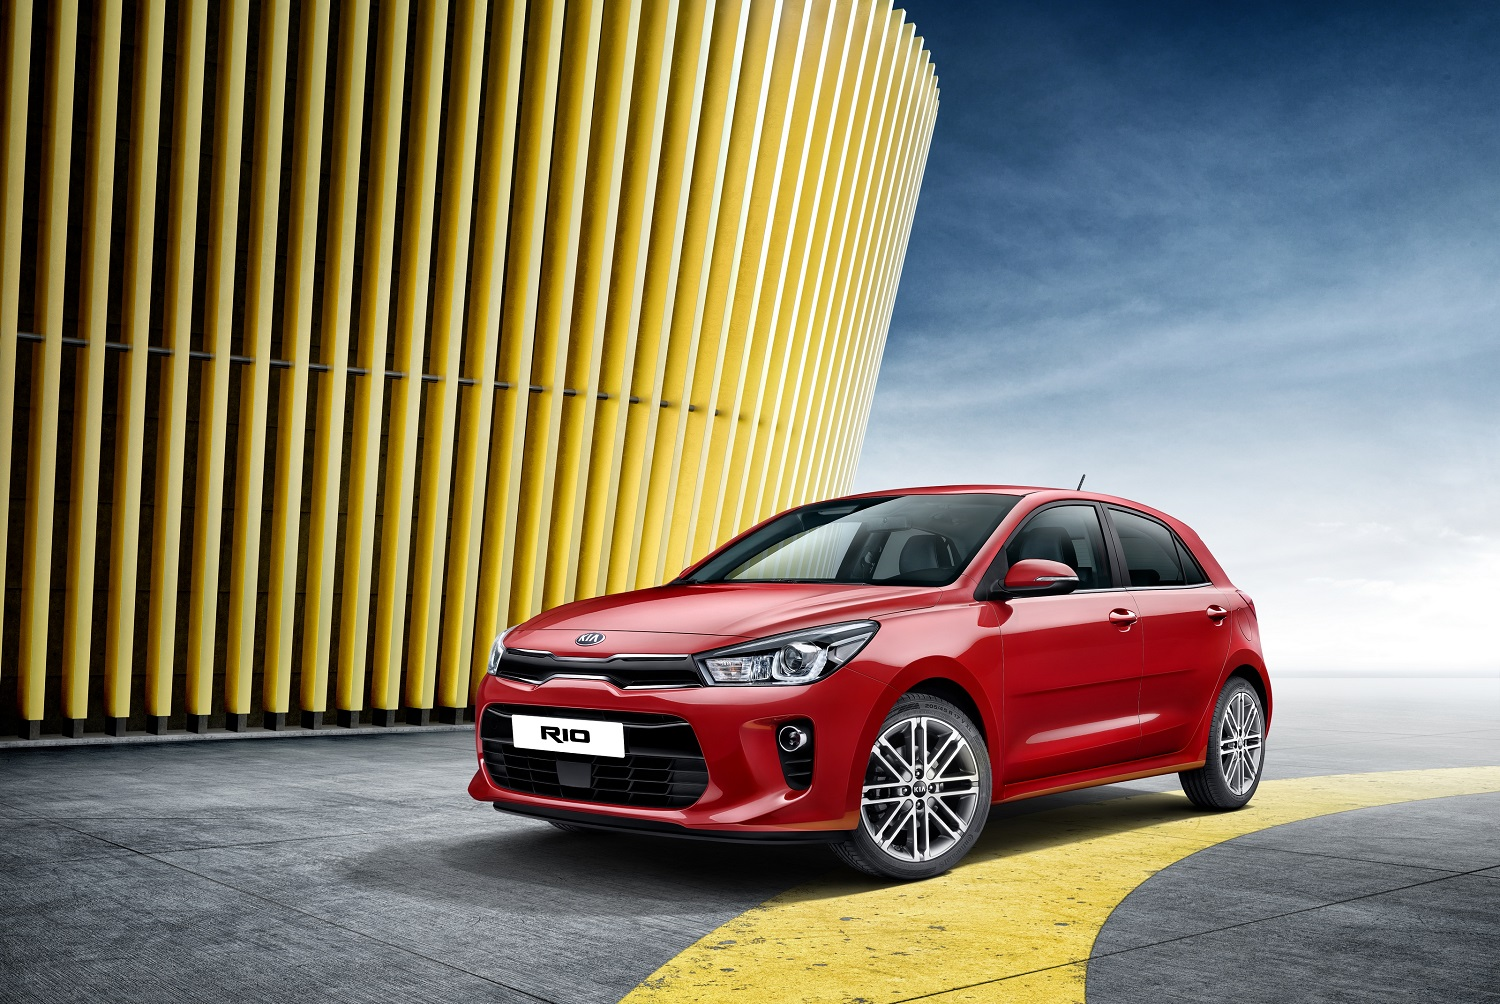 Gallery: Kia unveils new Rio ahead of Paris Motor Show